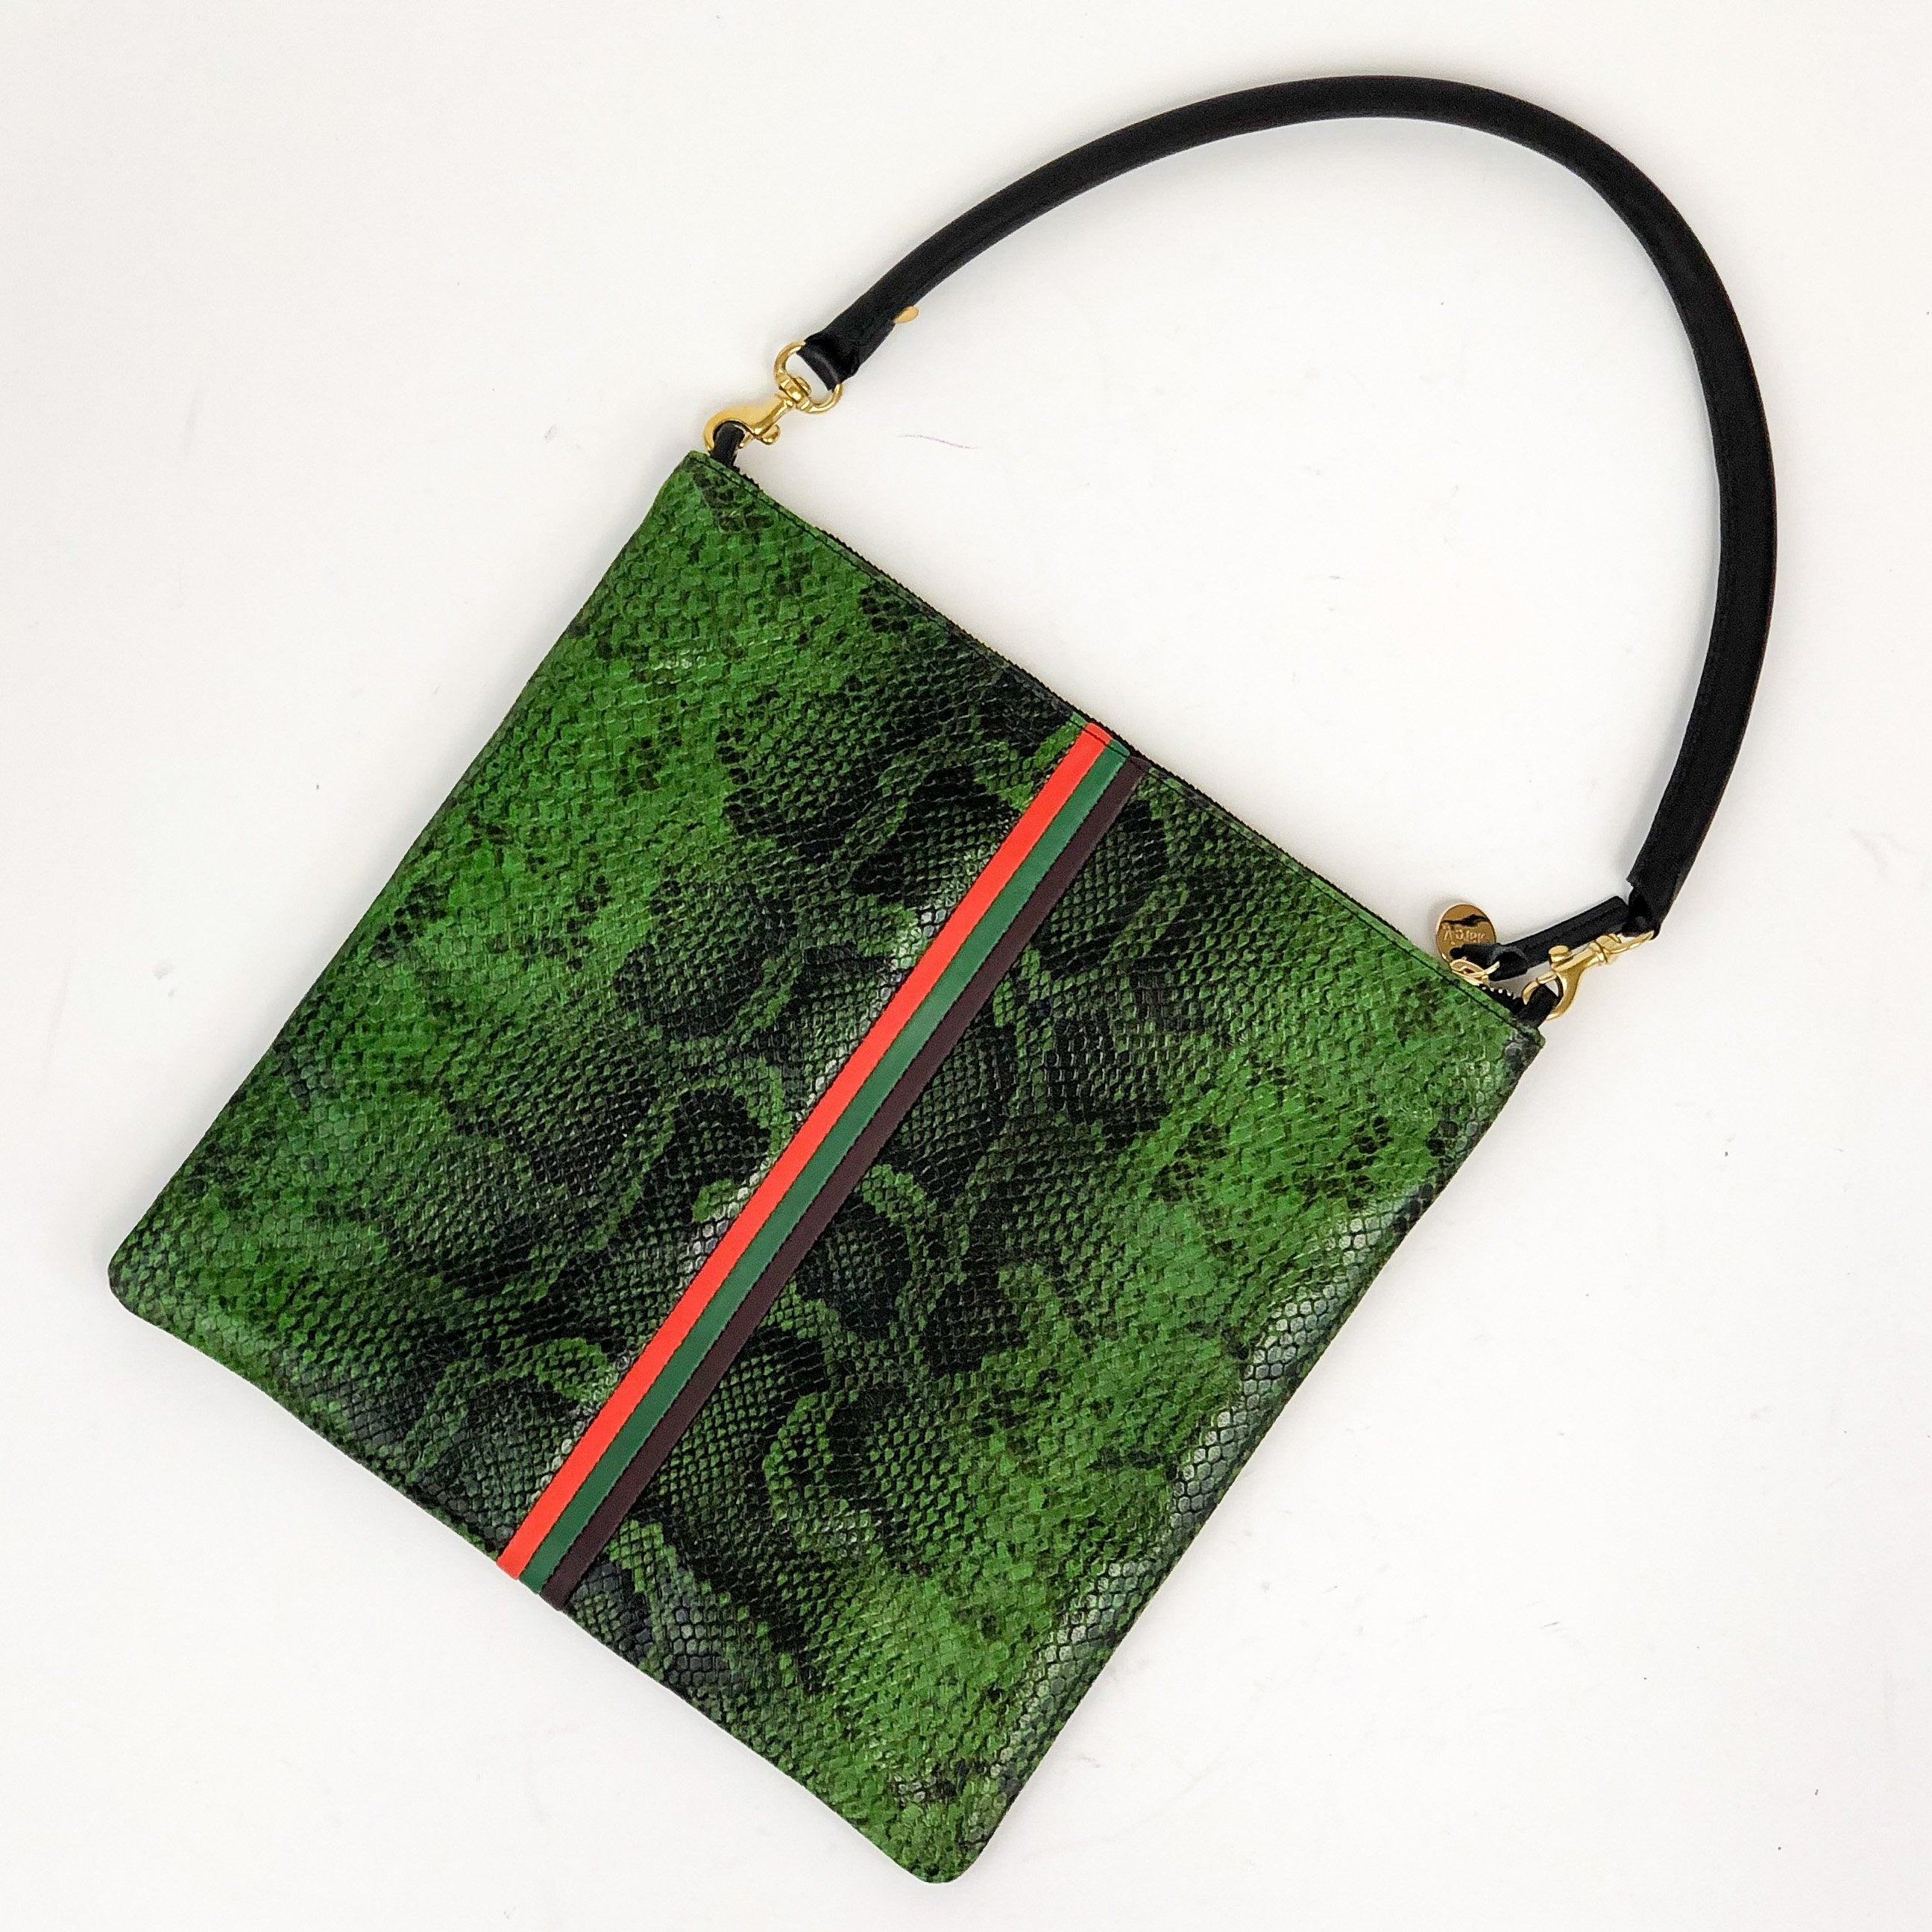 Clare V. - Foldover Clutch with Tabs and Black Tubular Shoulder Strap (Fern Mirco Snake with Stripes)